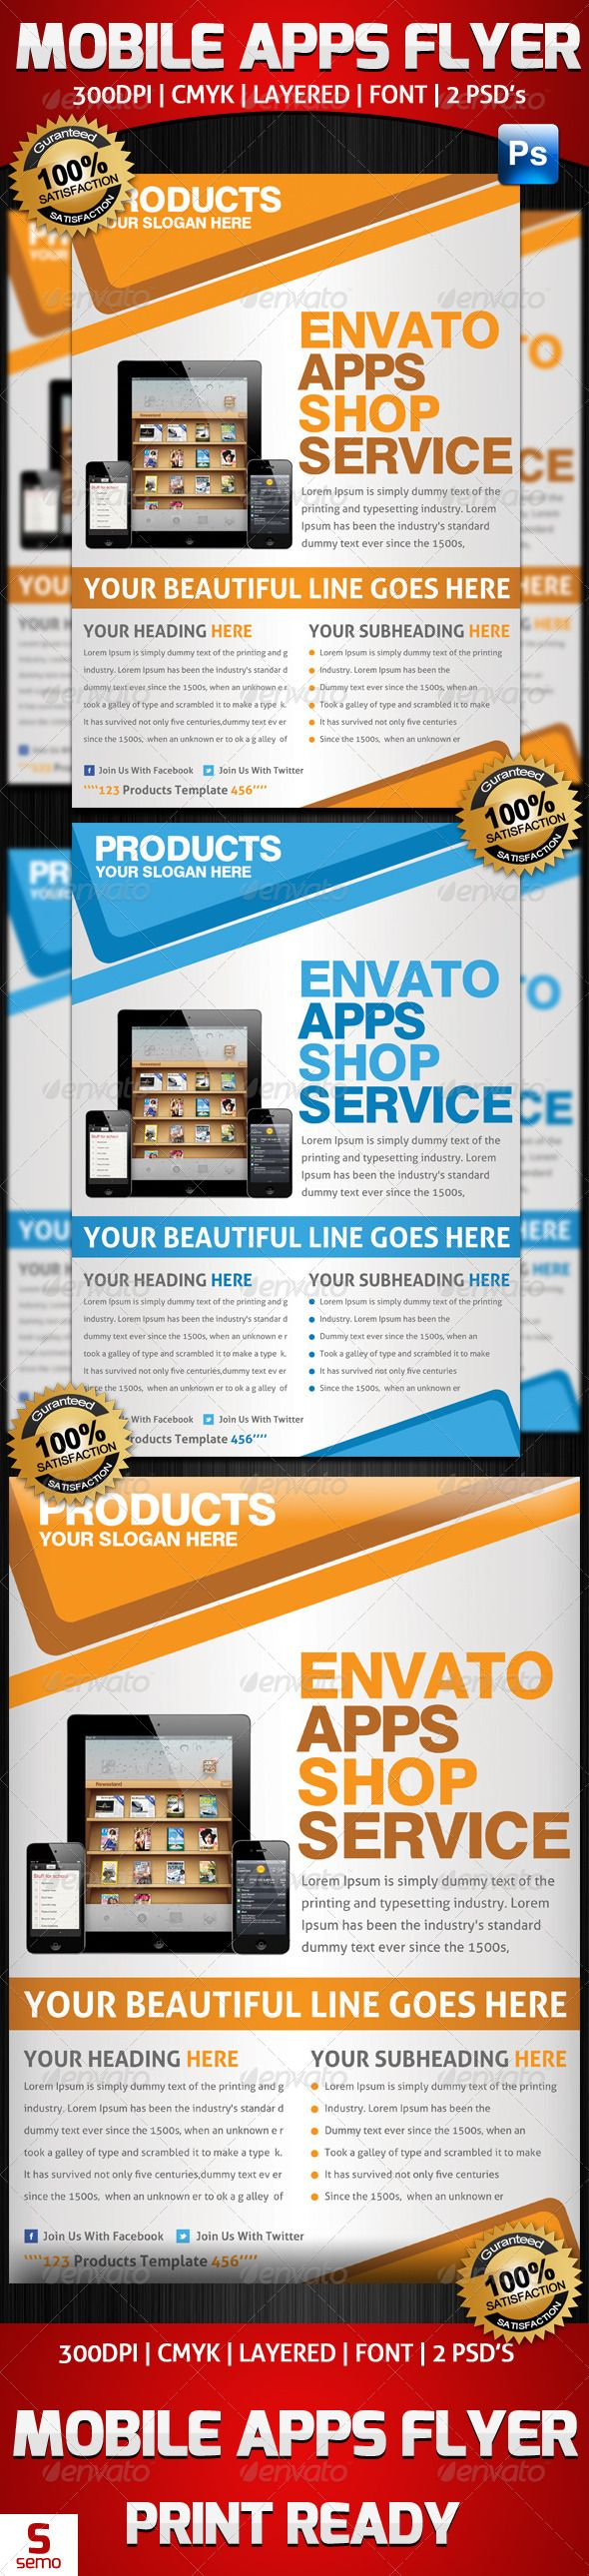 mobile app promotion flyer template  graphicriver mobile app promotion flyer template